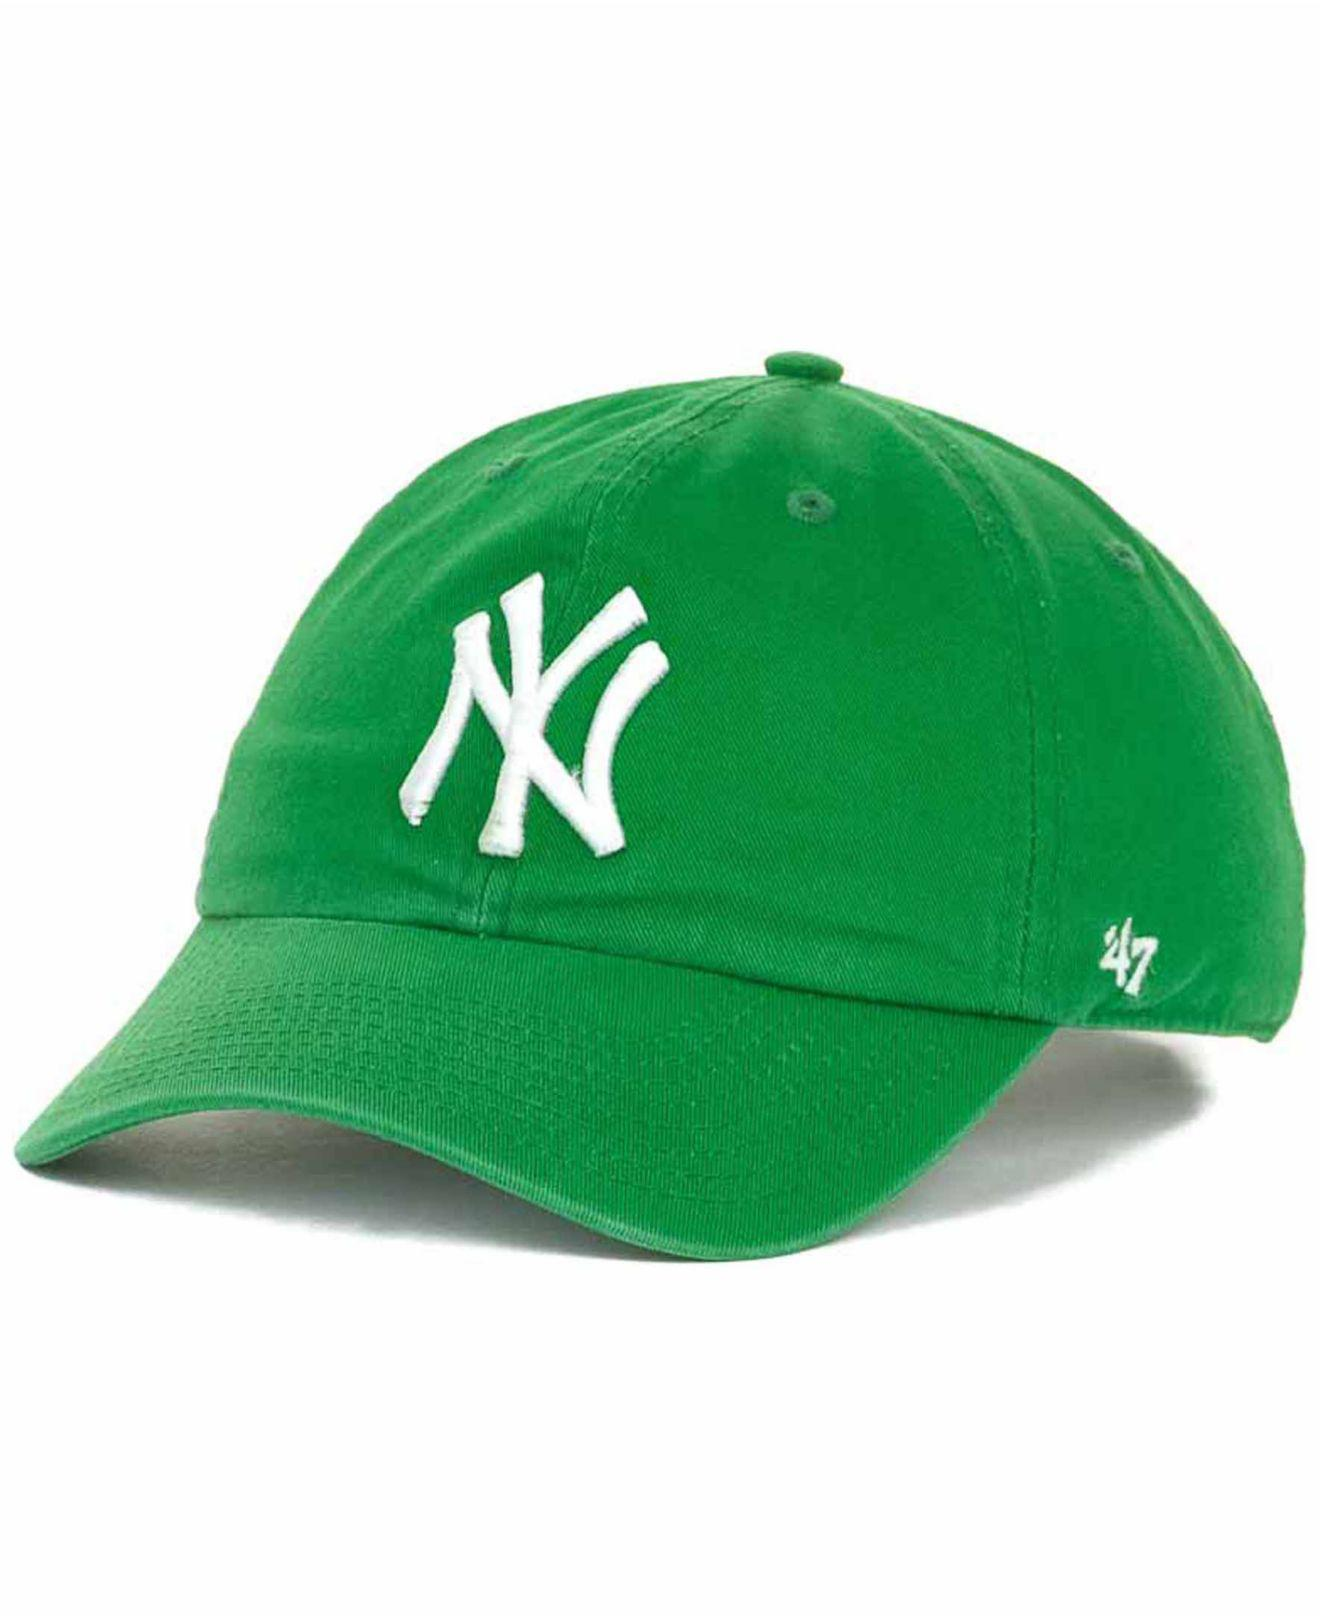 c198ea3fbd9 ... New York Yankees Clean Up Hat for Men - Lyst. View fullscreen